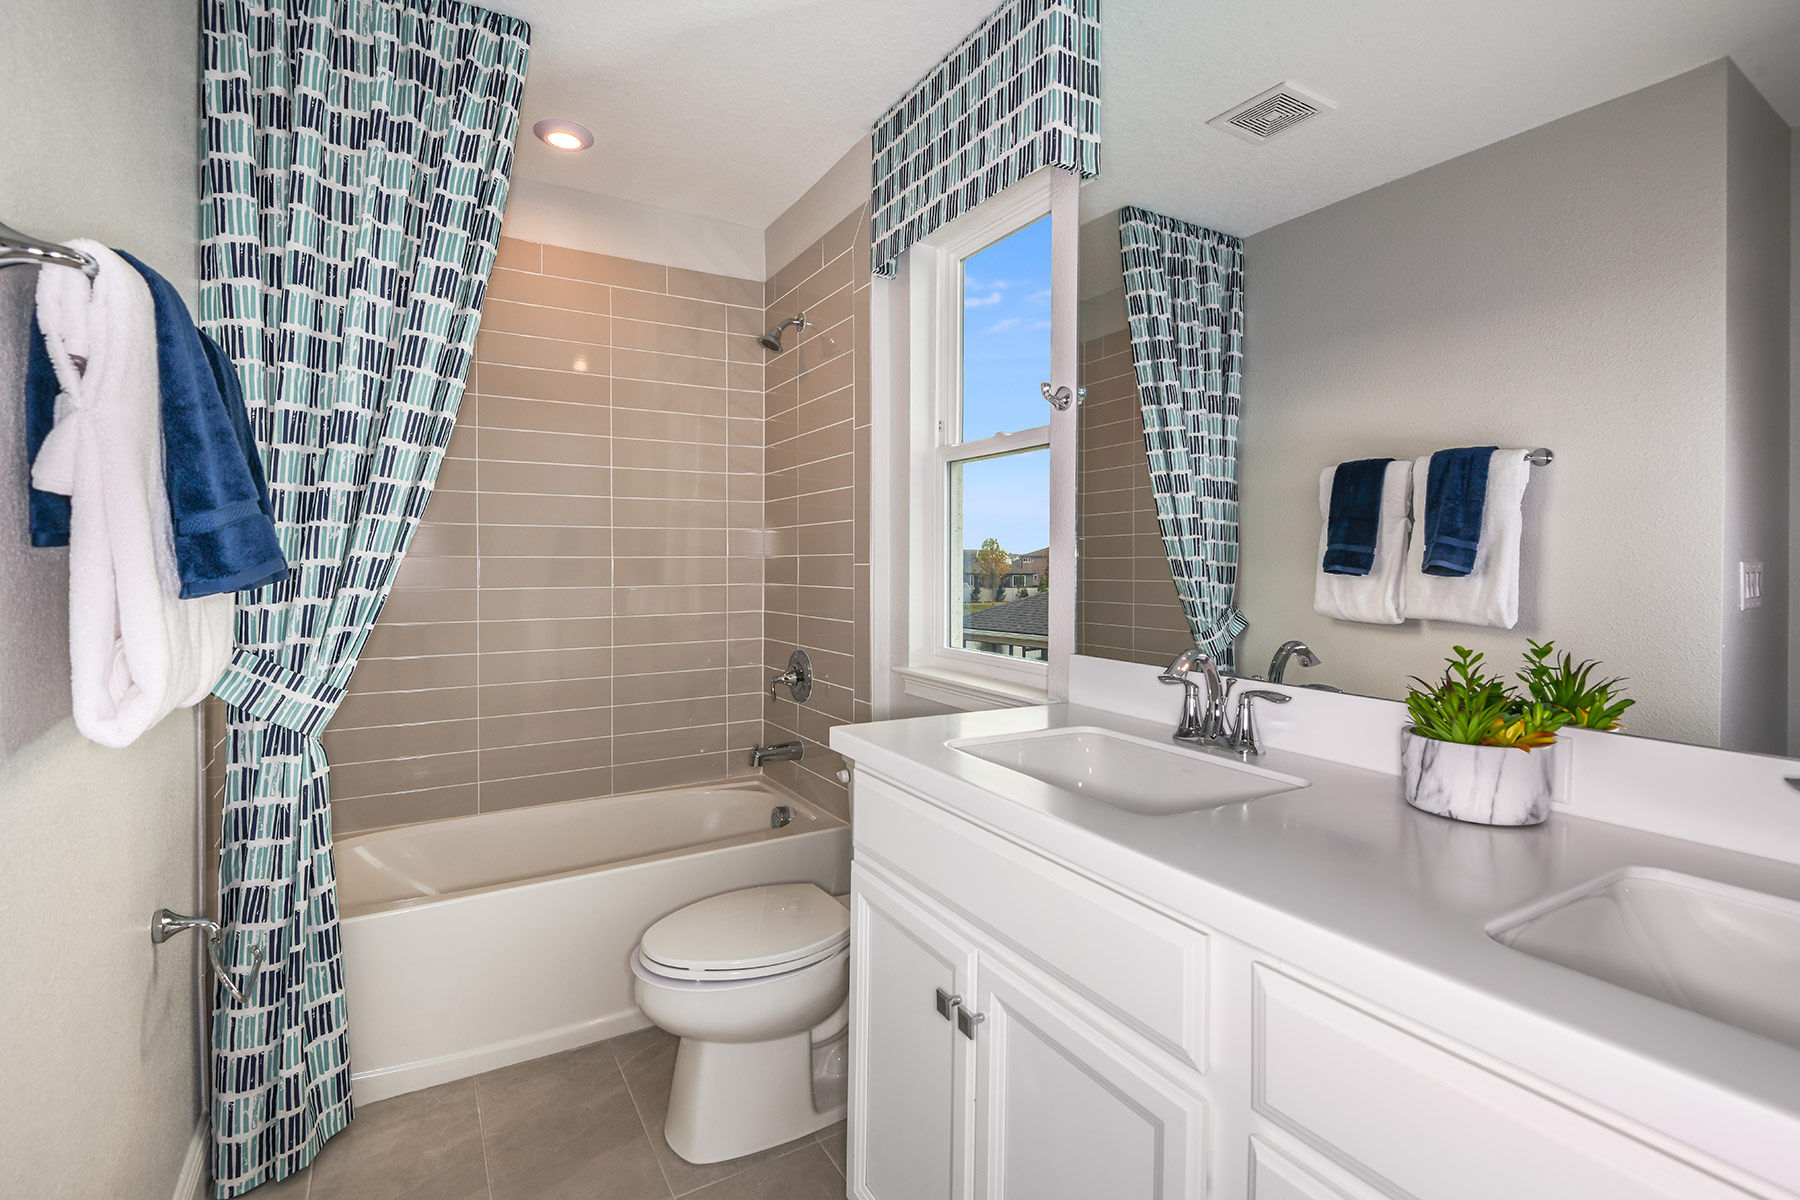 Venice Plan Bath at Parkview at Long Lake Ranch in Lutz Florida by Mattamy Homes